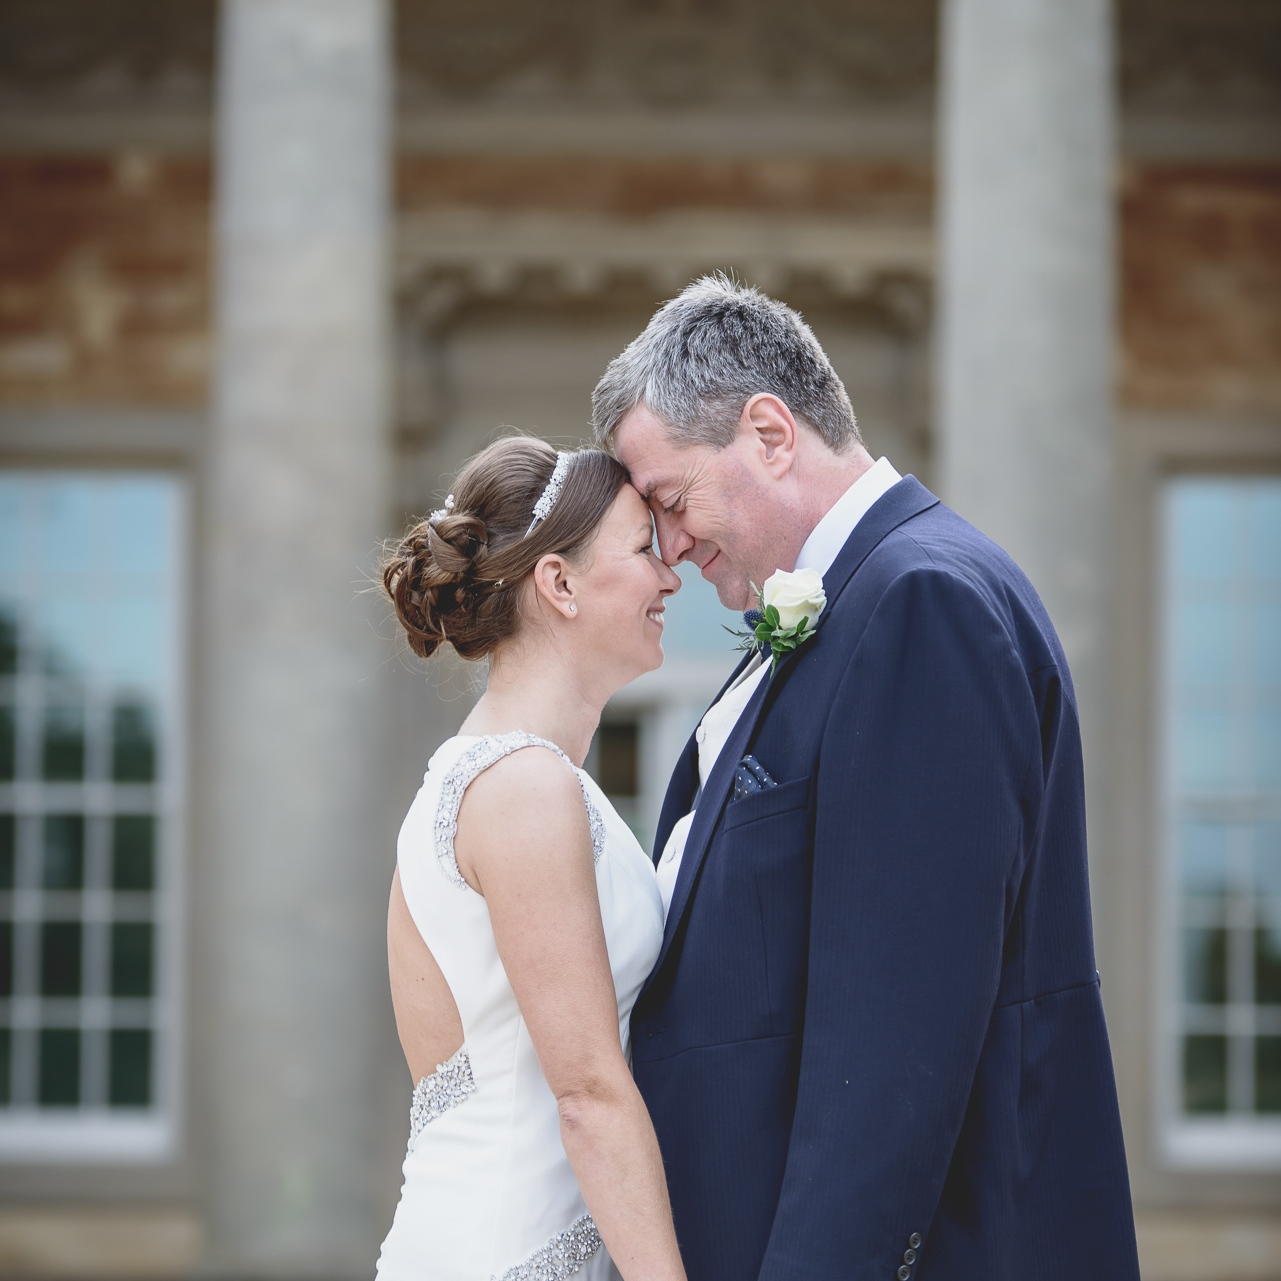 Warwickshire Wedding Photography Portfolio-Compton Verney Warwickshire Coventry 019 Wedding Photography-128